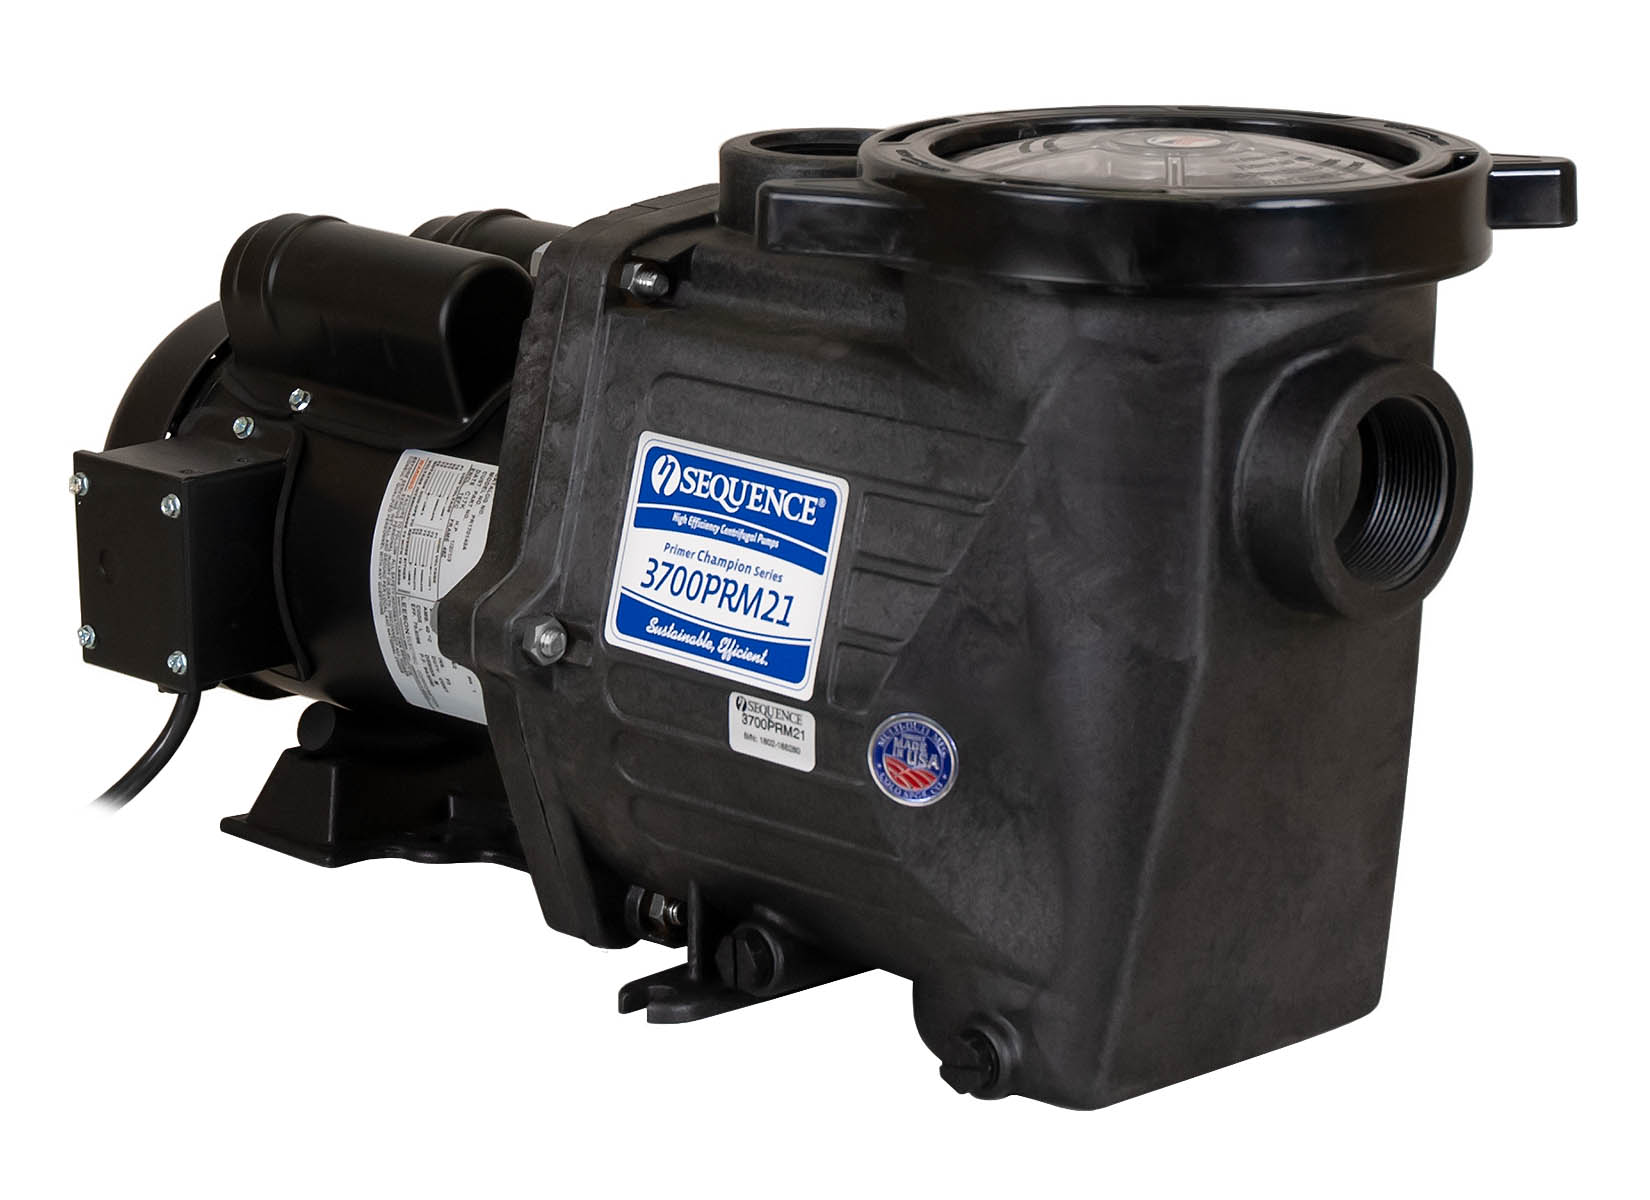 Sequence Primer Champion Pump with black Leeson Motor left angle view